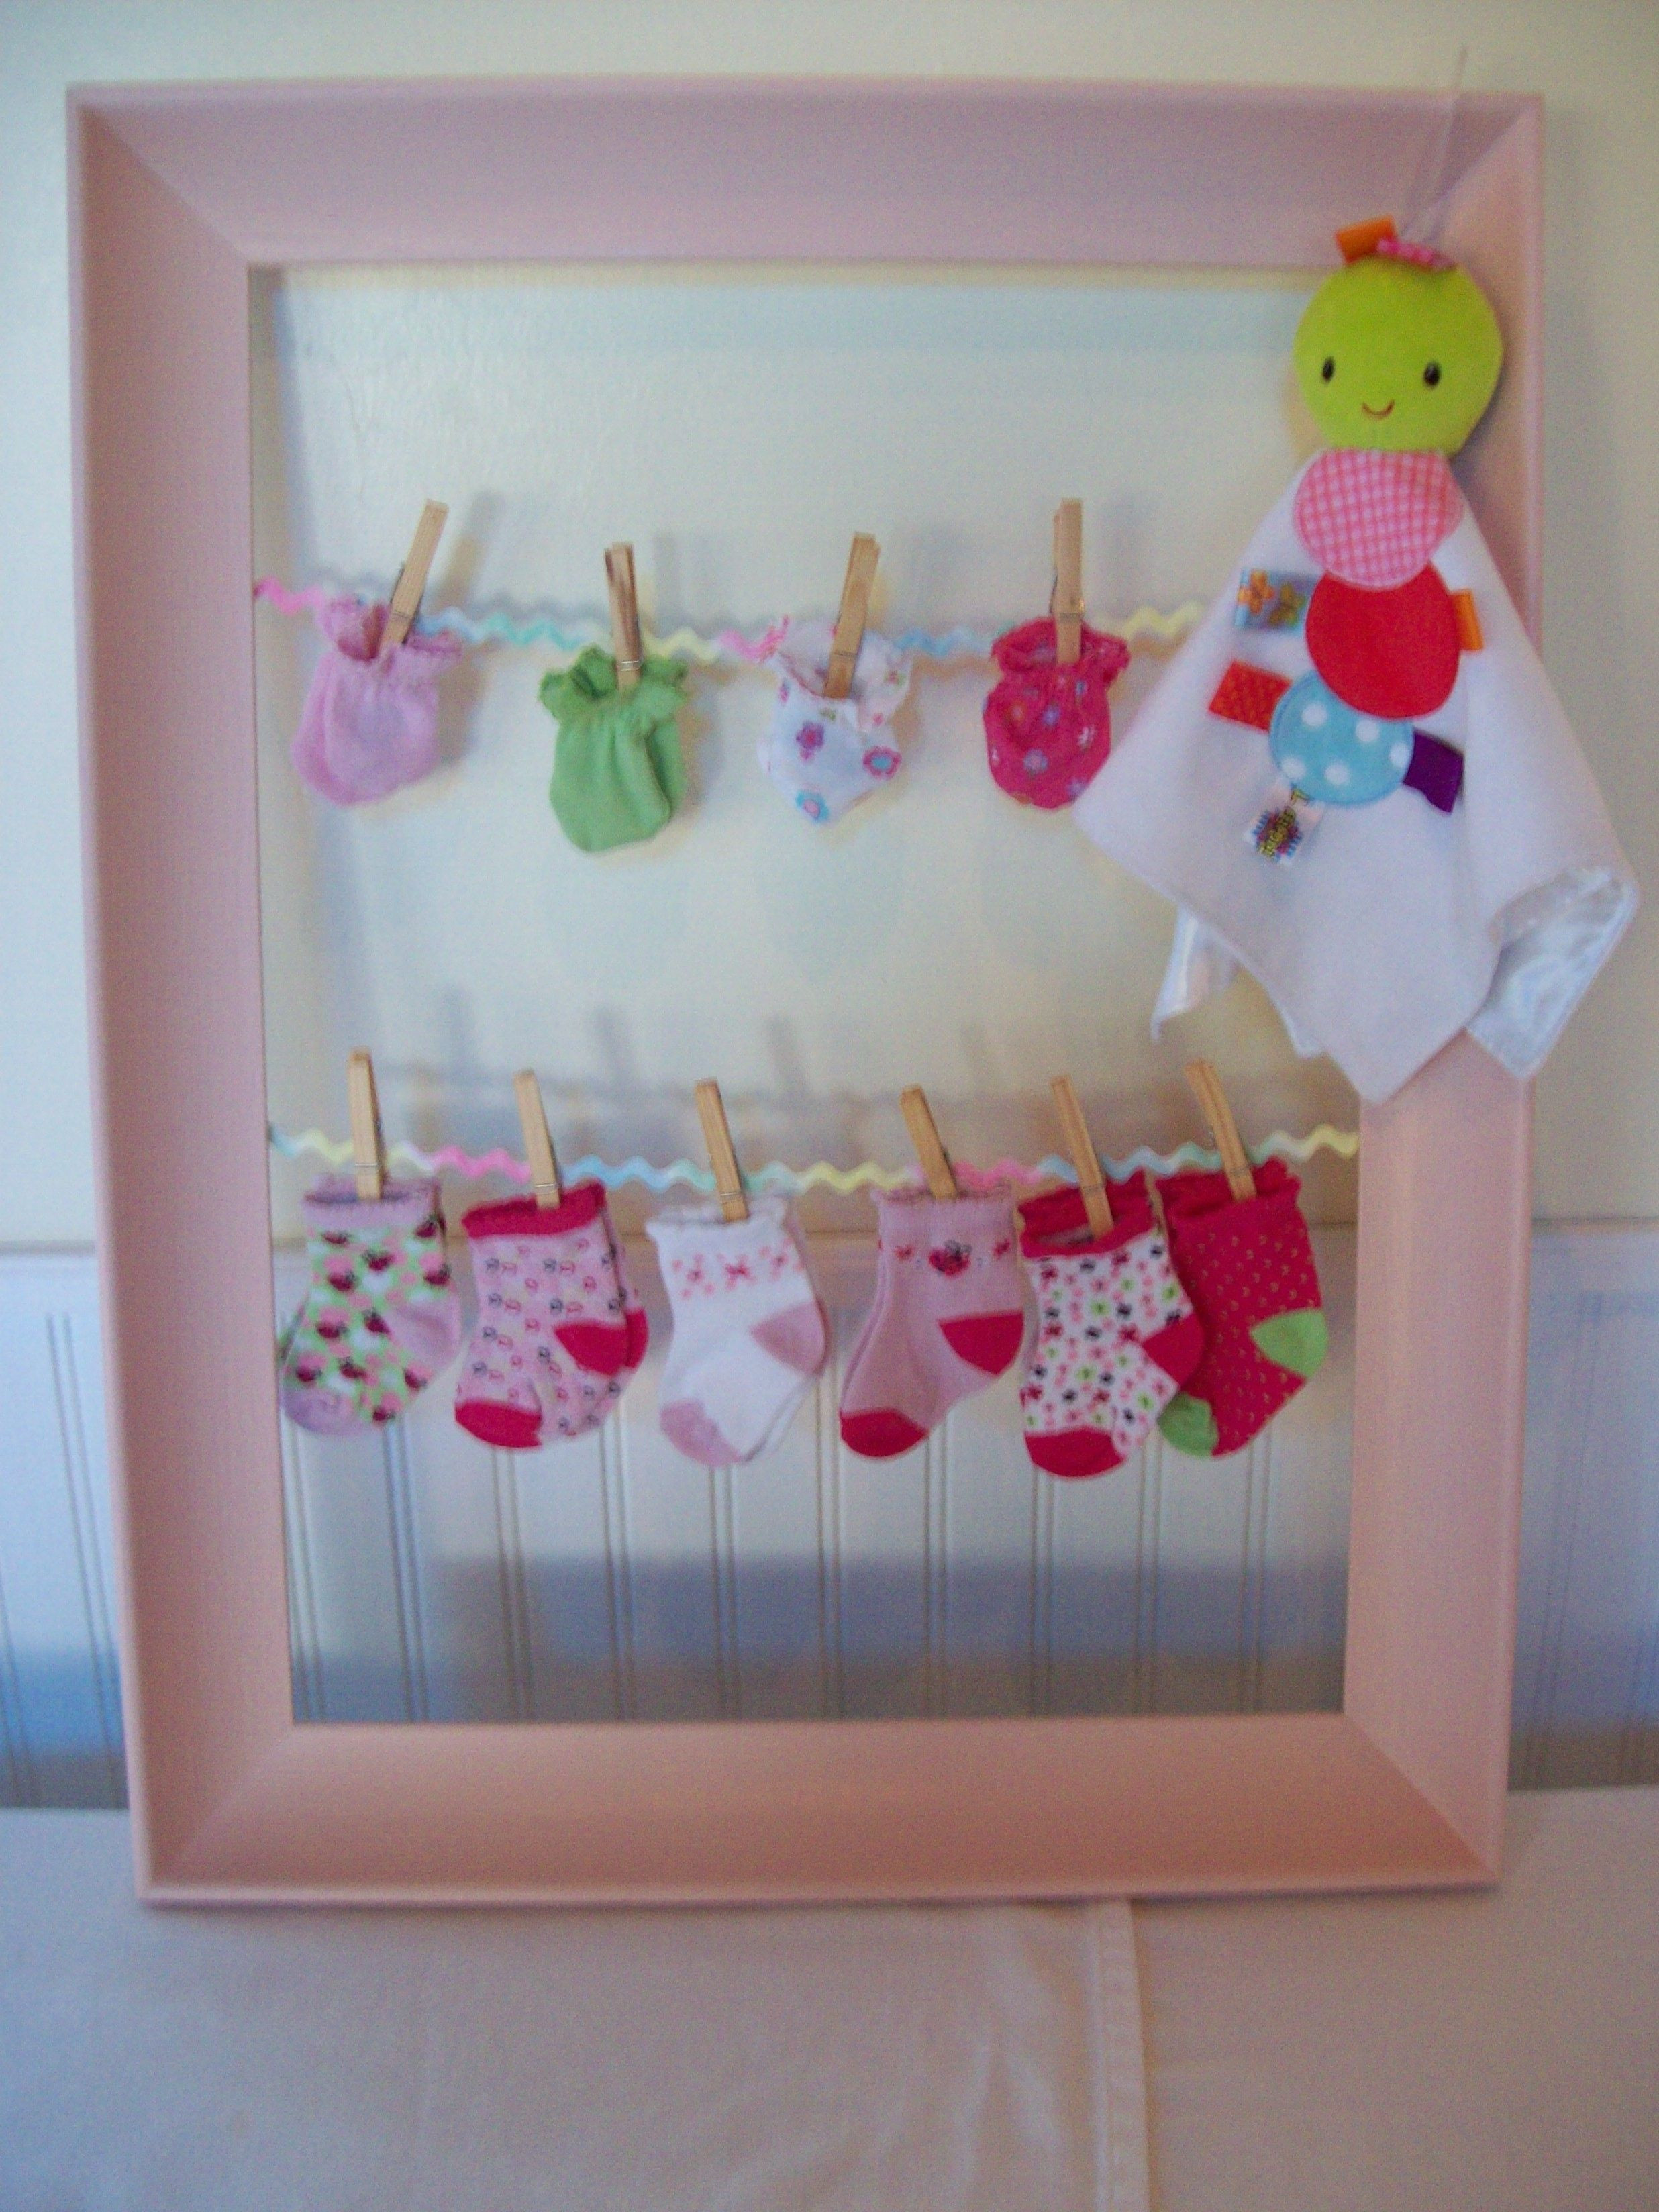 Best ideas about Baby Shower DIY Decorations . Save or Pin MY DIY Baby Shower Decorations Baby Shower Now.